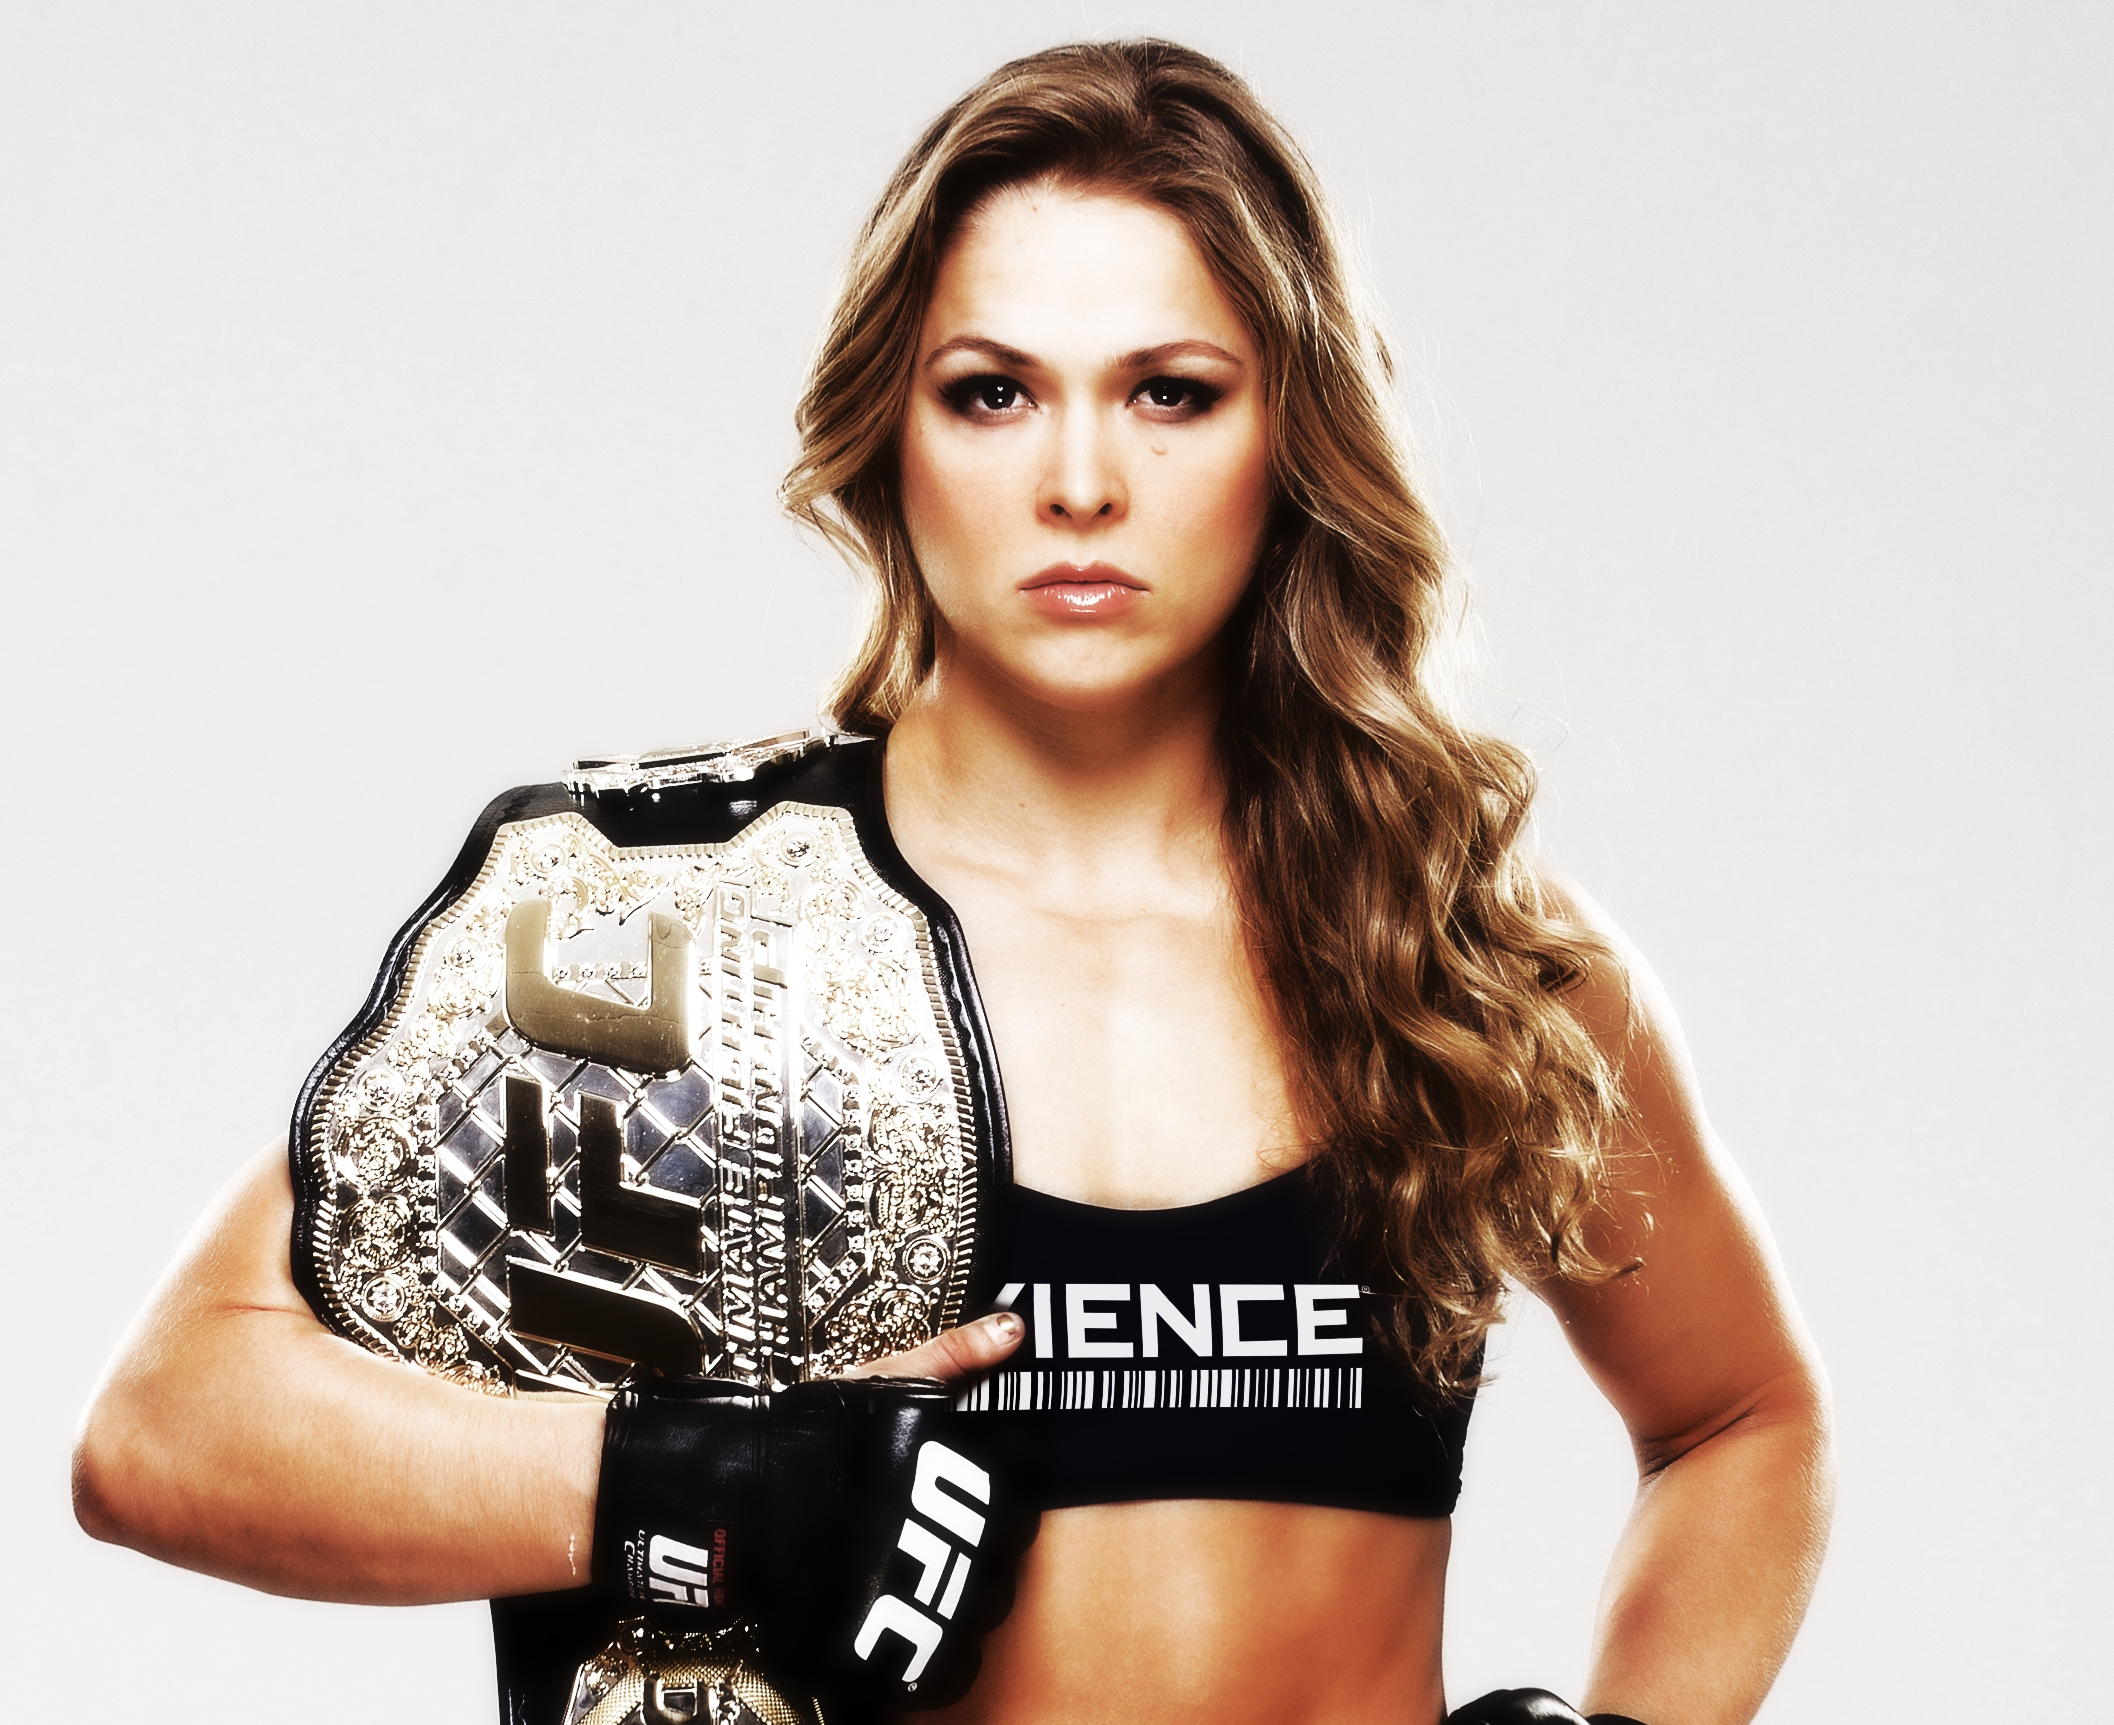 Ronda Rousey established as top pound-for-pound fighter